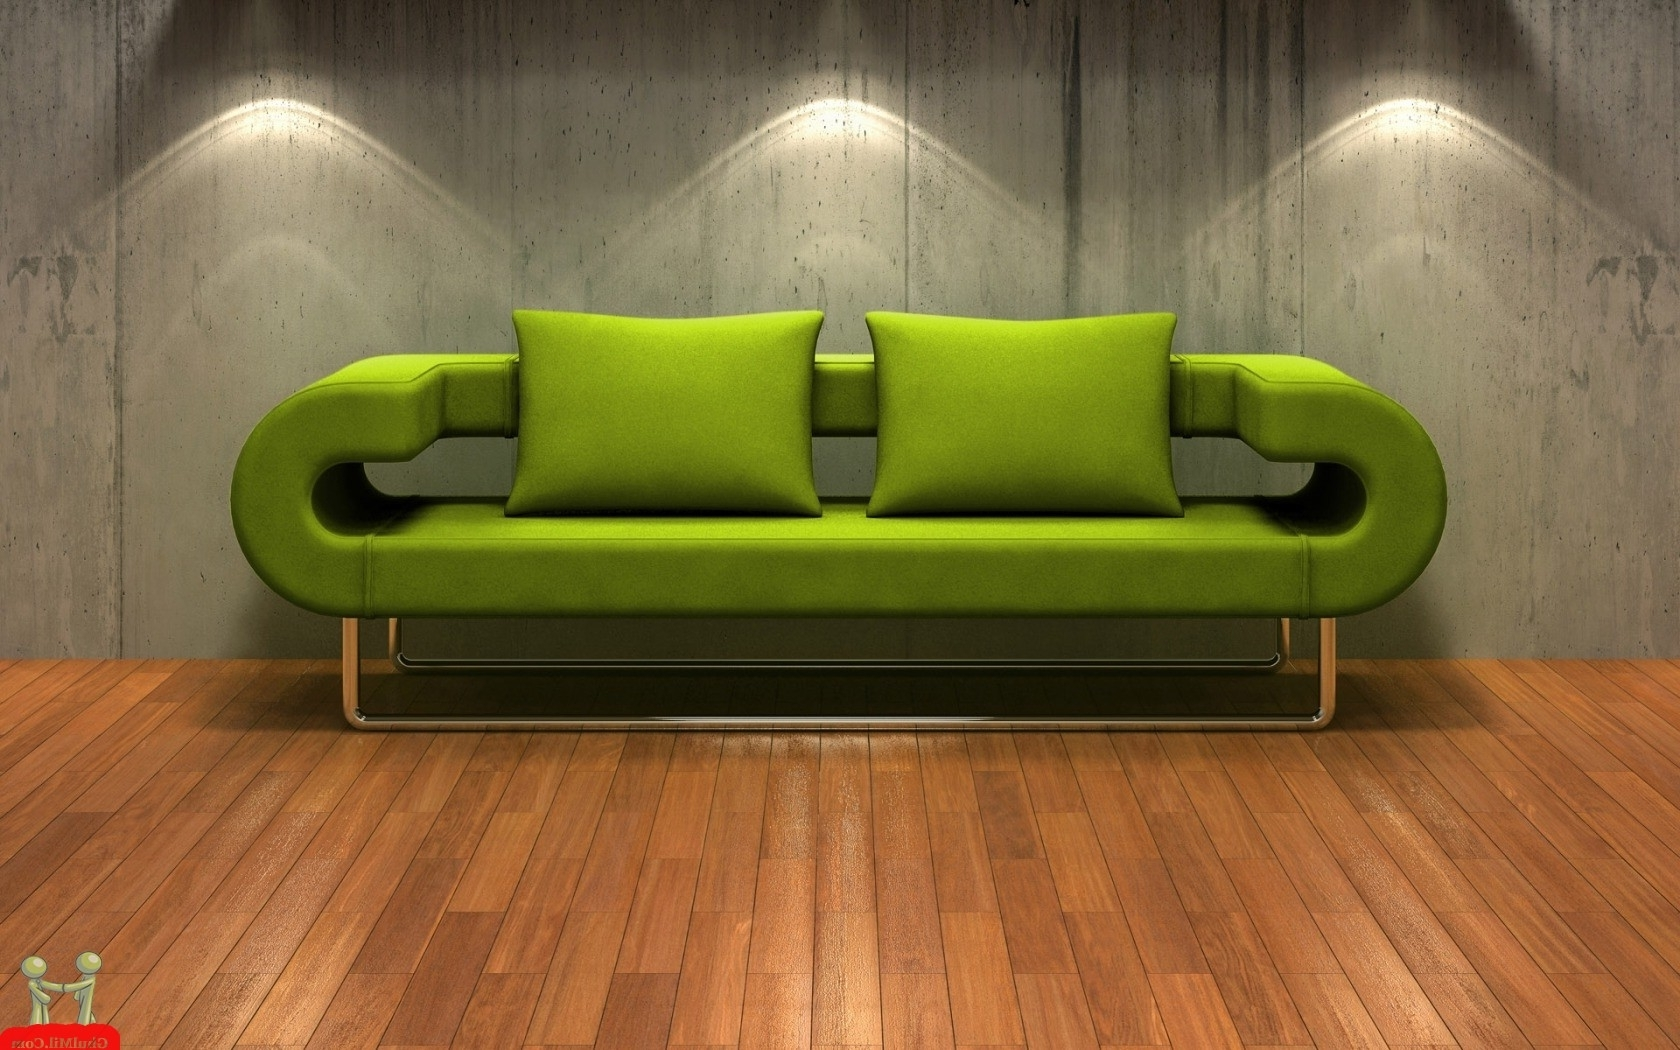 Hd Wallpapers Free Download Inside Widely Used Green Sofa Chairs (View 8 of 15)